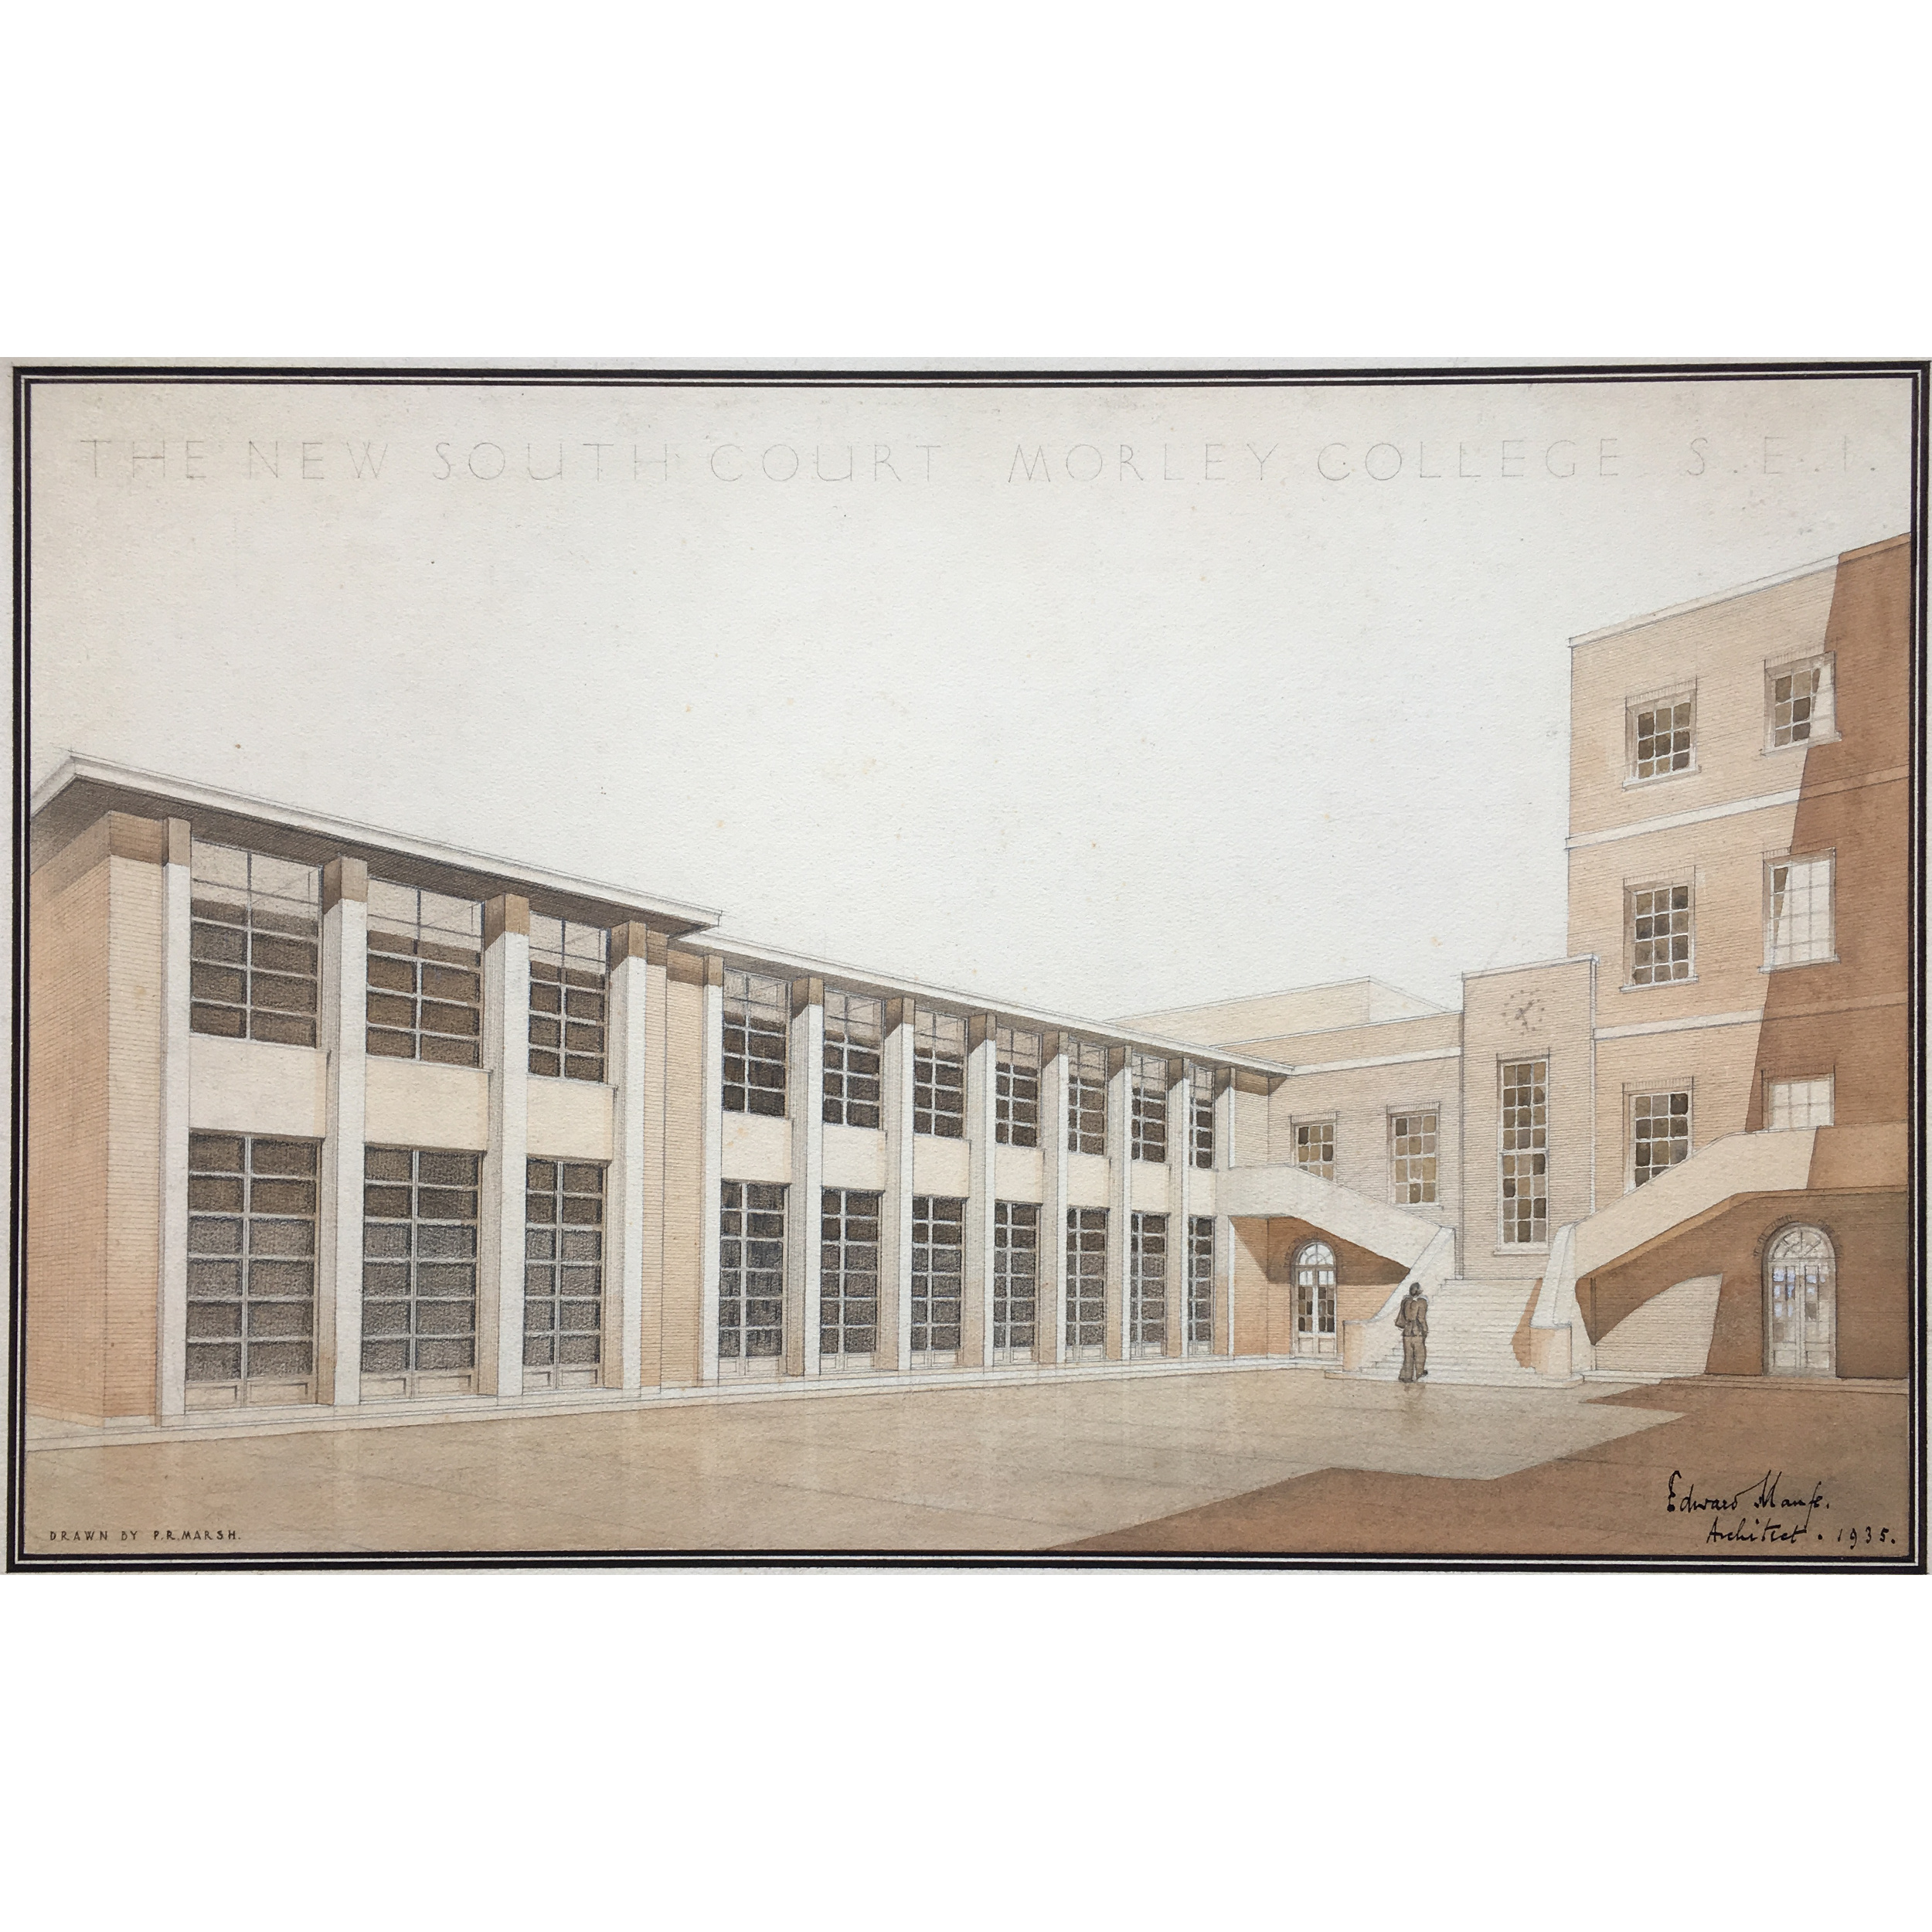 Sir Edward Maufe Design for Morley College